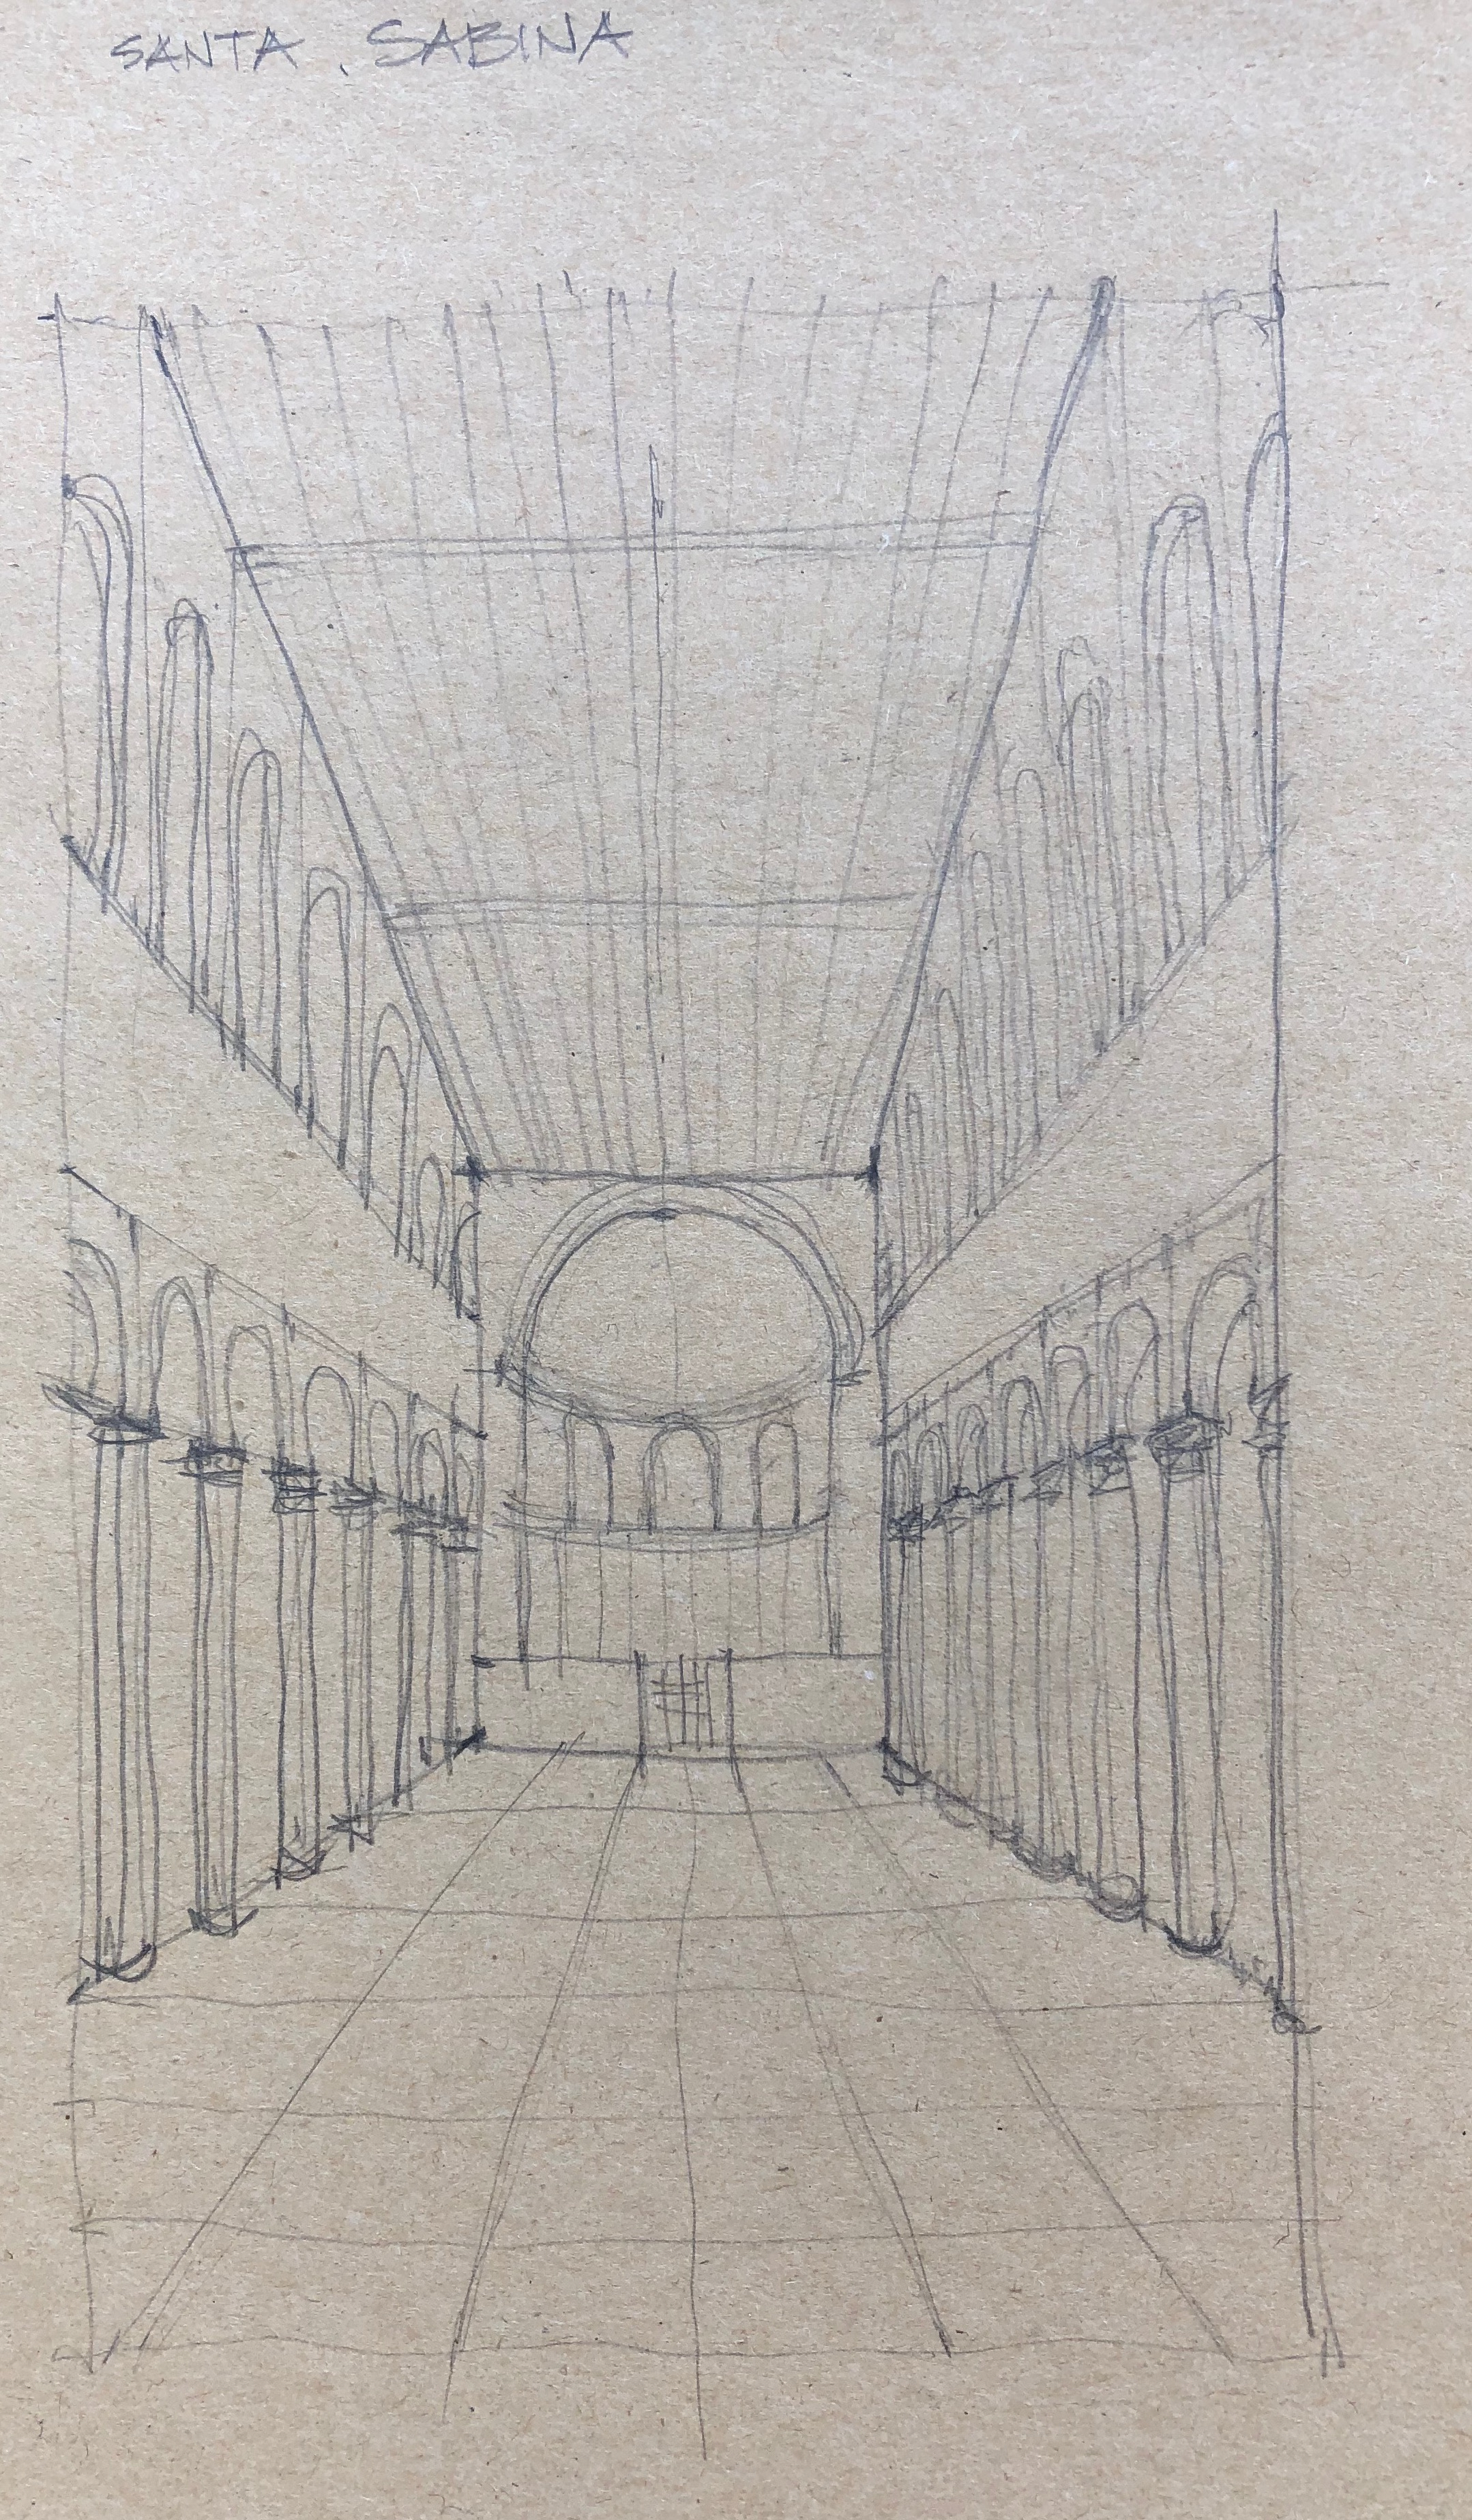 Interior of Santa Sabina on Aventine Hill, one of the seven hills of Rome. This sketch was rushed and does not come close to conveying the scale and reverence of this space. May need to sketch this one again.